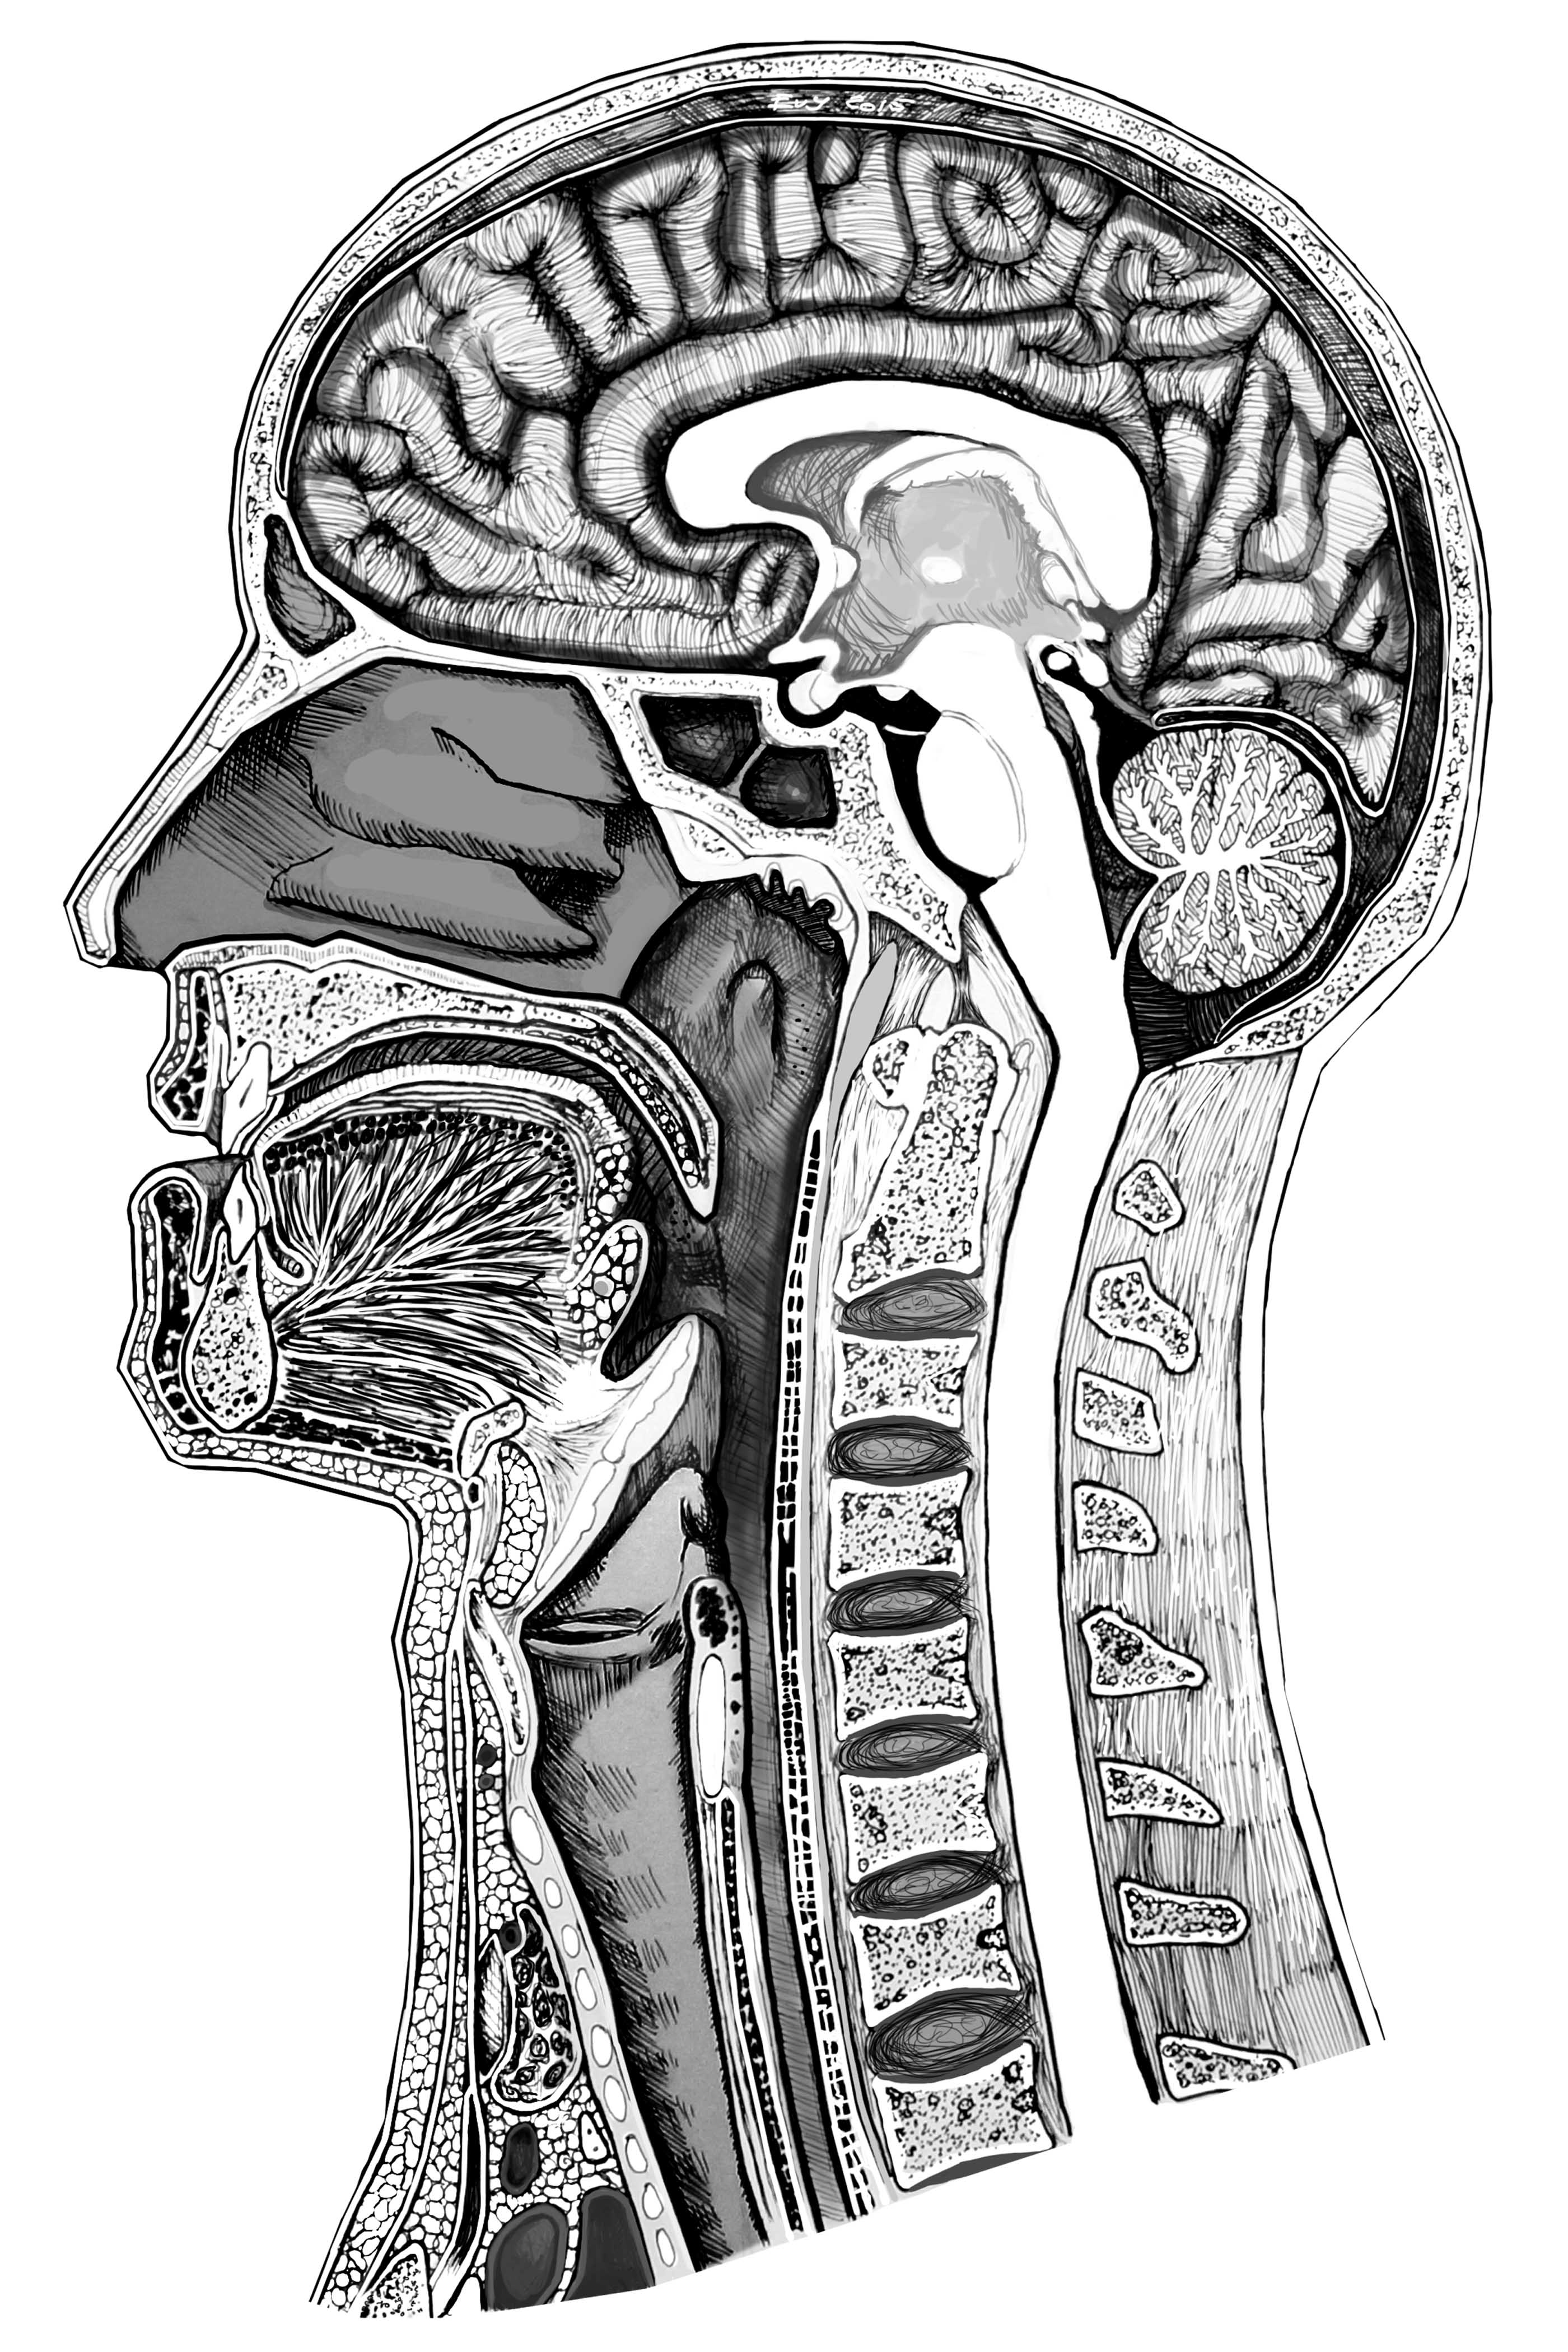 Anatomical drawing of the head and neck